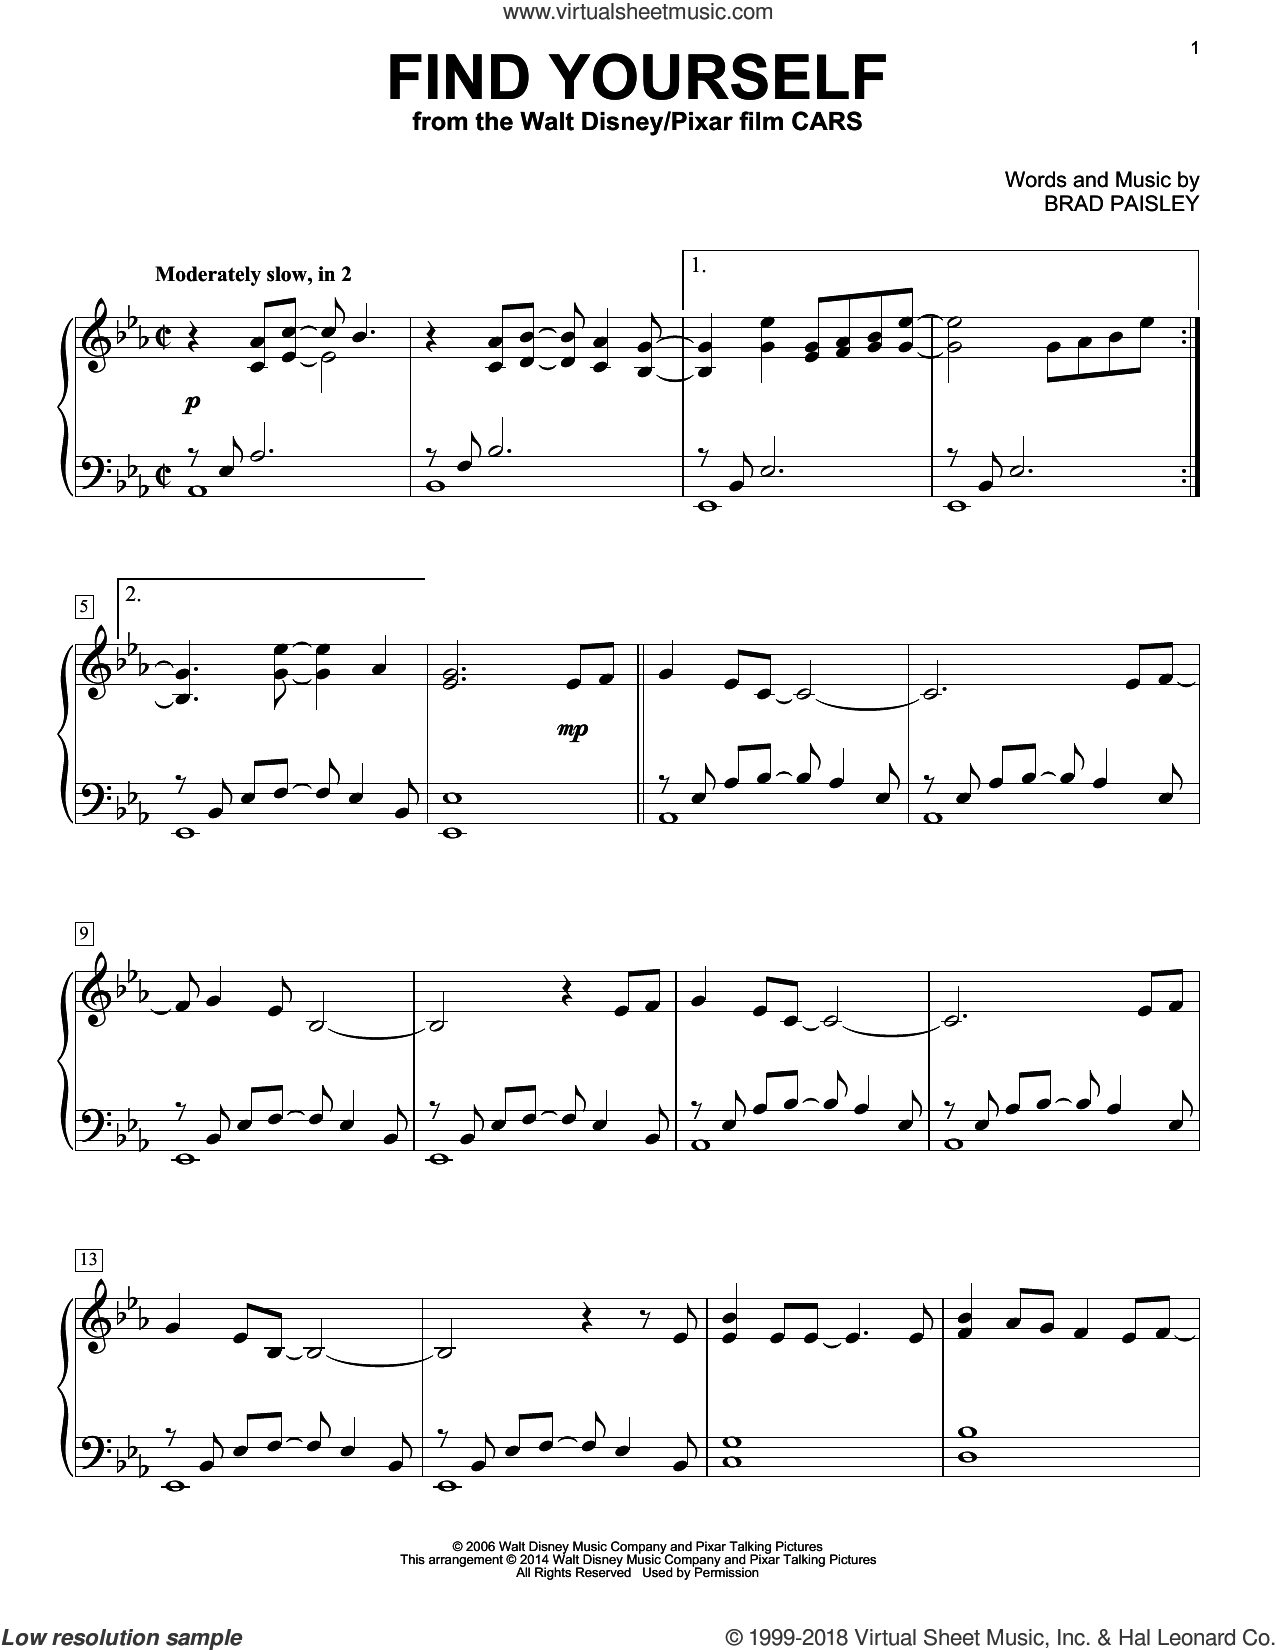 Find Yourself (from Cars) sheet music for piano solo by Brad Paisley, intermediate skill level